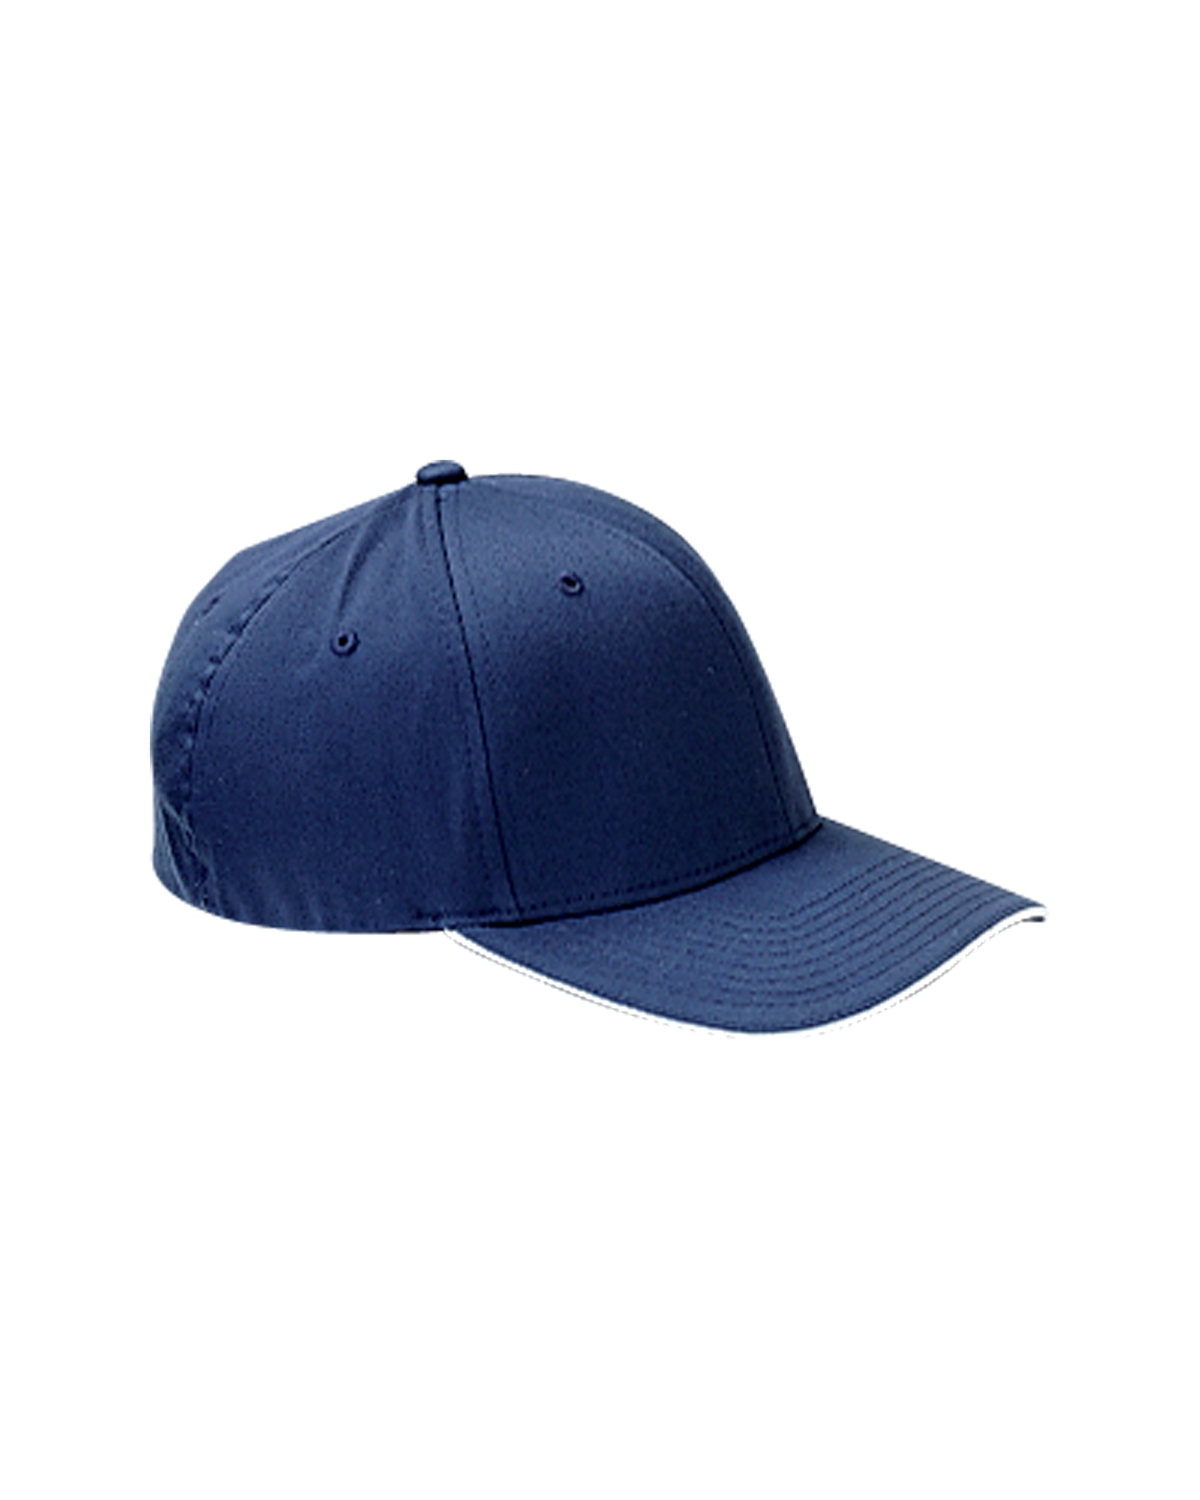 d590a95344d1d5 Flexfit 6277V Adult Wooly Cap with Sandwich Bill - Navy/ White - L/XL -  Walmart.com